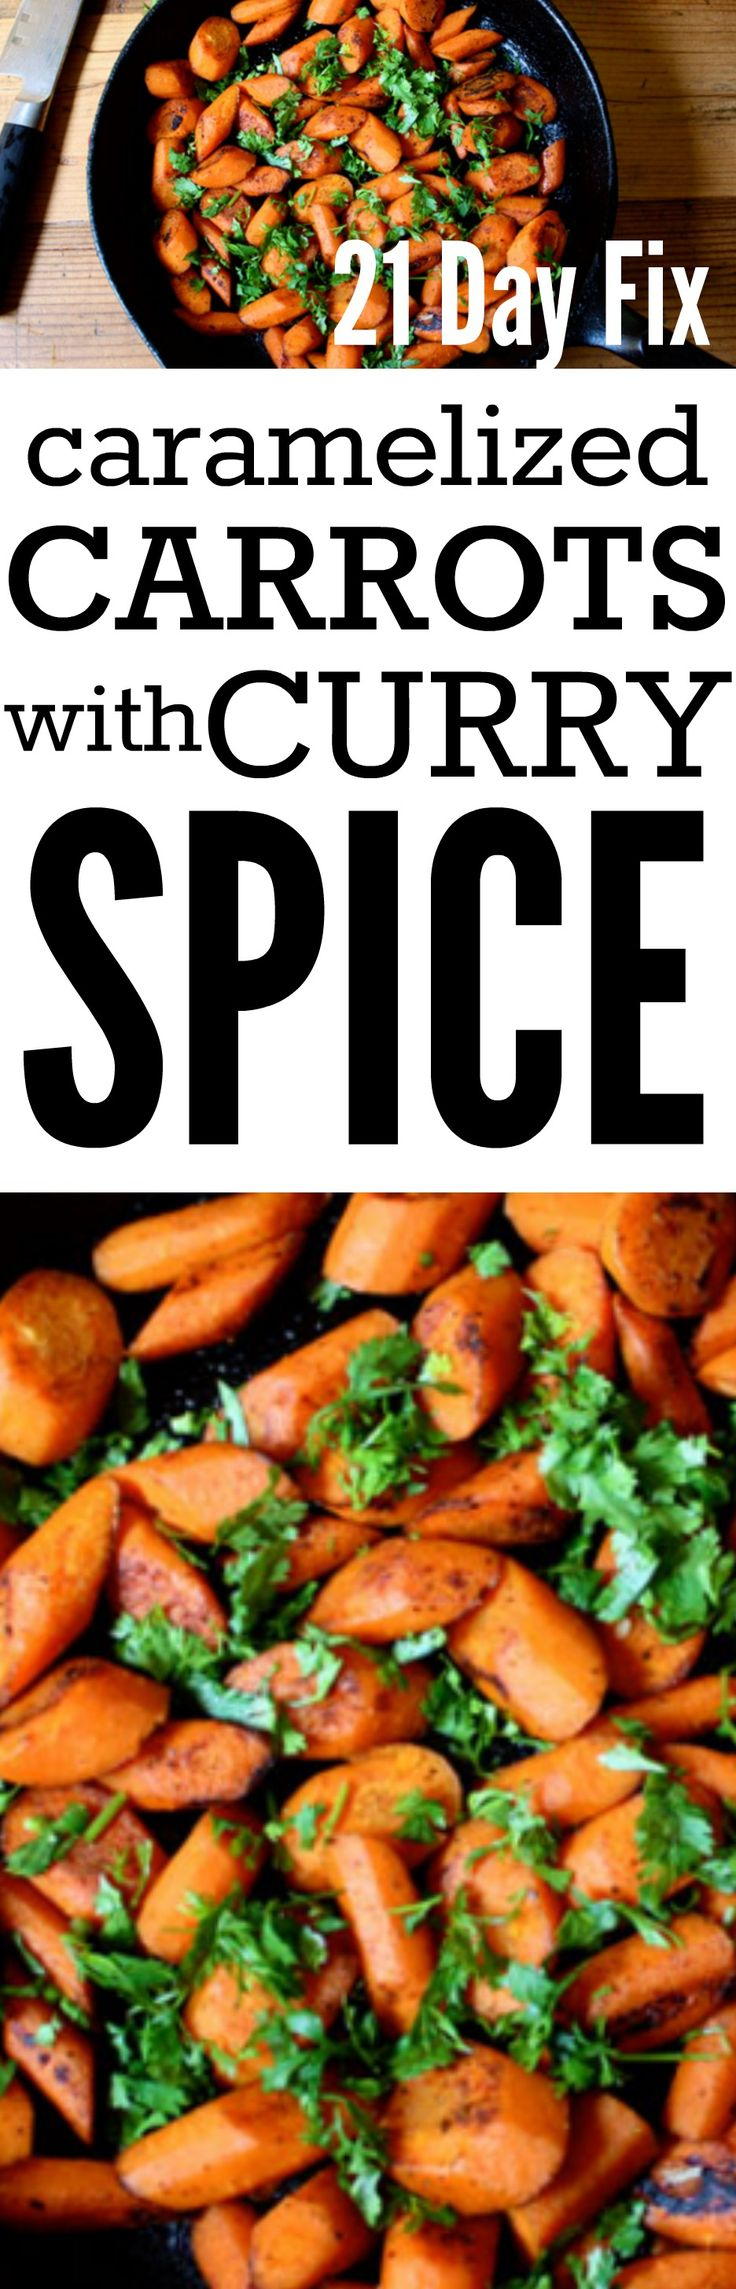 21 Day Fix Caramelized Carrots with Curry Spice #21dayfix #21dayfixcarrots #21dayfixrecipes #21dayfixcaramelizedcarrots #21dayfixsidedishes #healthy #healthyrecipes #heathlycarrotrecipes #heathysidedishes #healthycurryrecipes #21dayfixcurryrecipes #cleaneatingsidedishes #cleaneatingcarrots #cleaneatingcurryrecipes